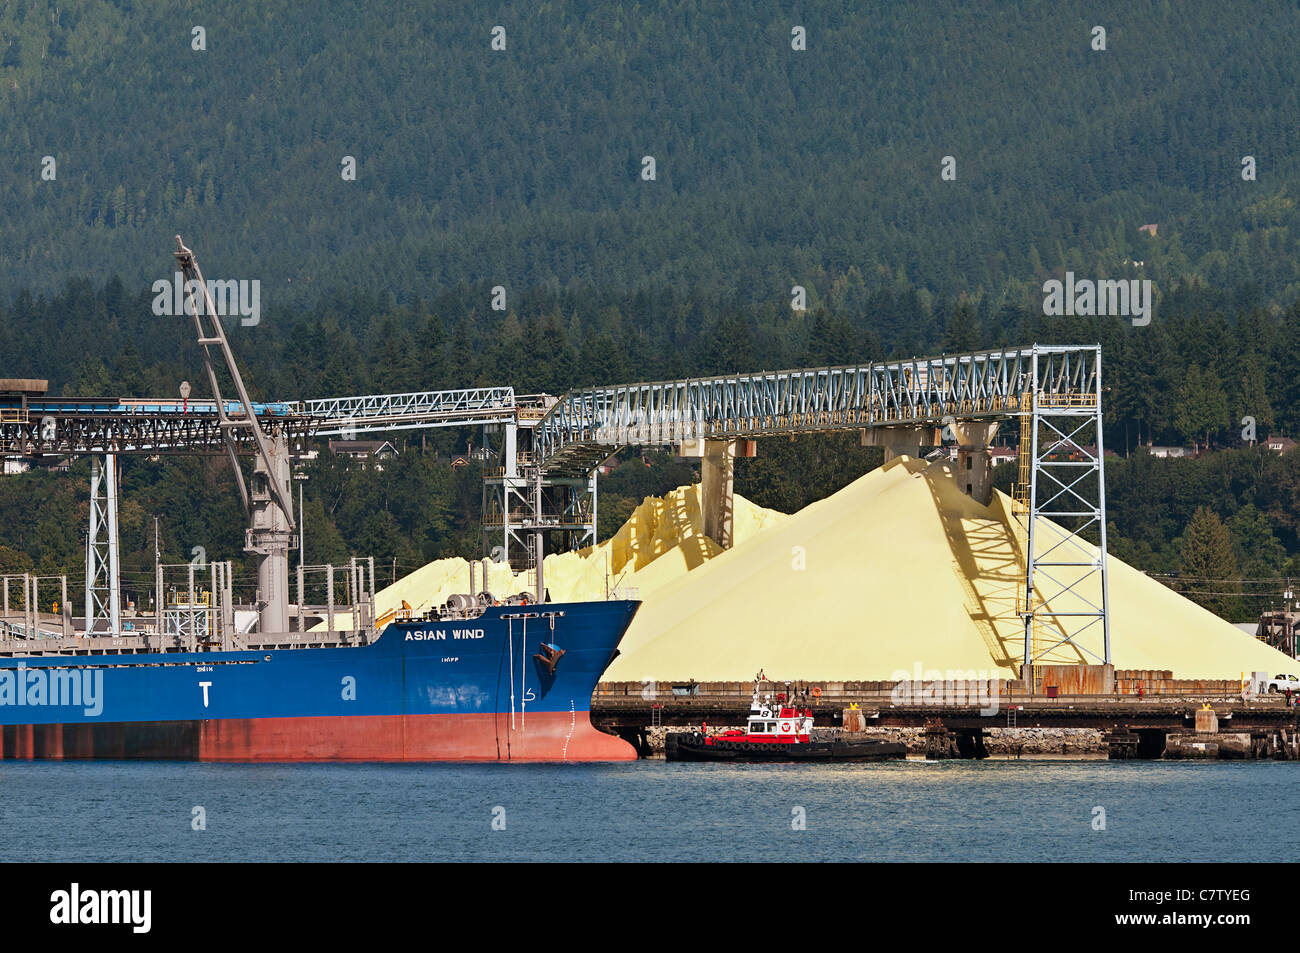 A freighter, 'Asian Wind', docks at Vancouver Wharves bulk cargo terminal, North Vancouver, Canada. - Stock Image